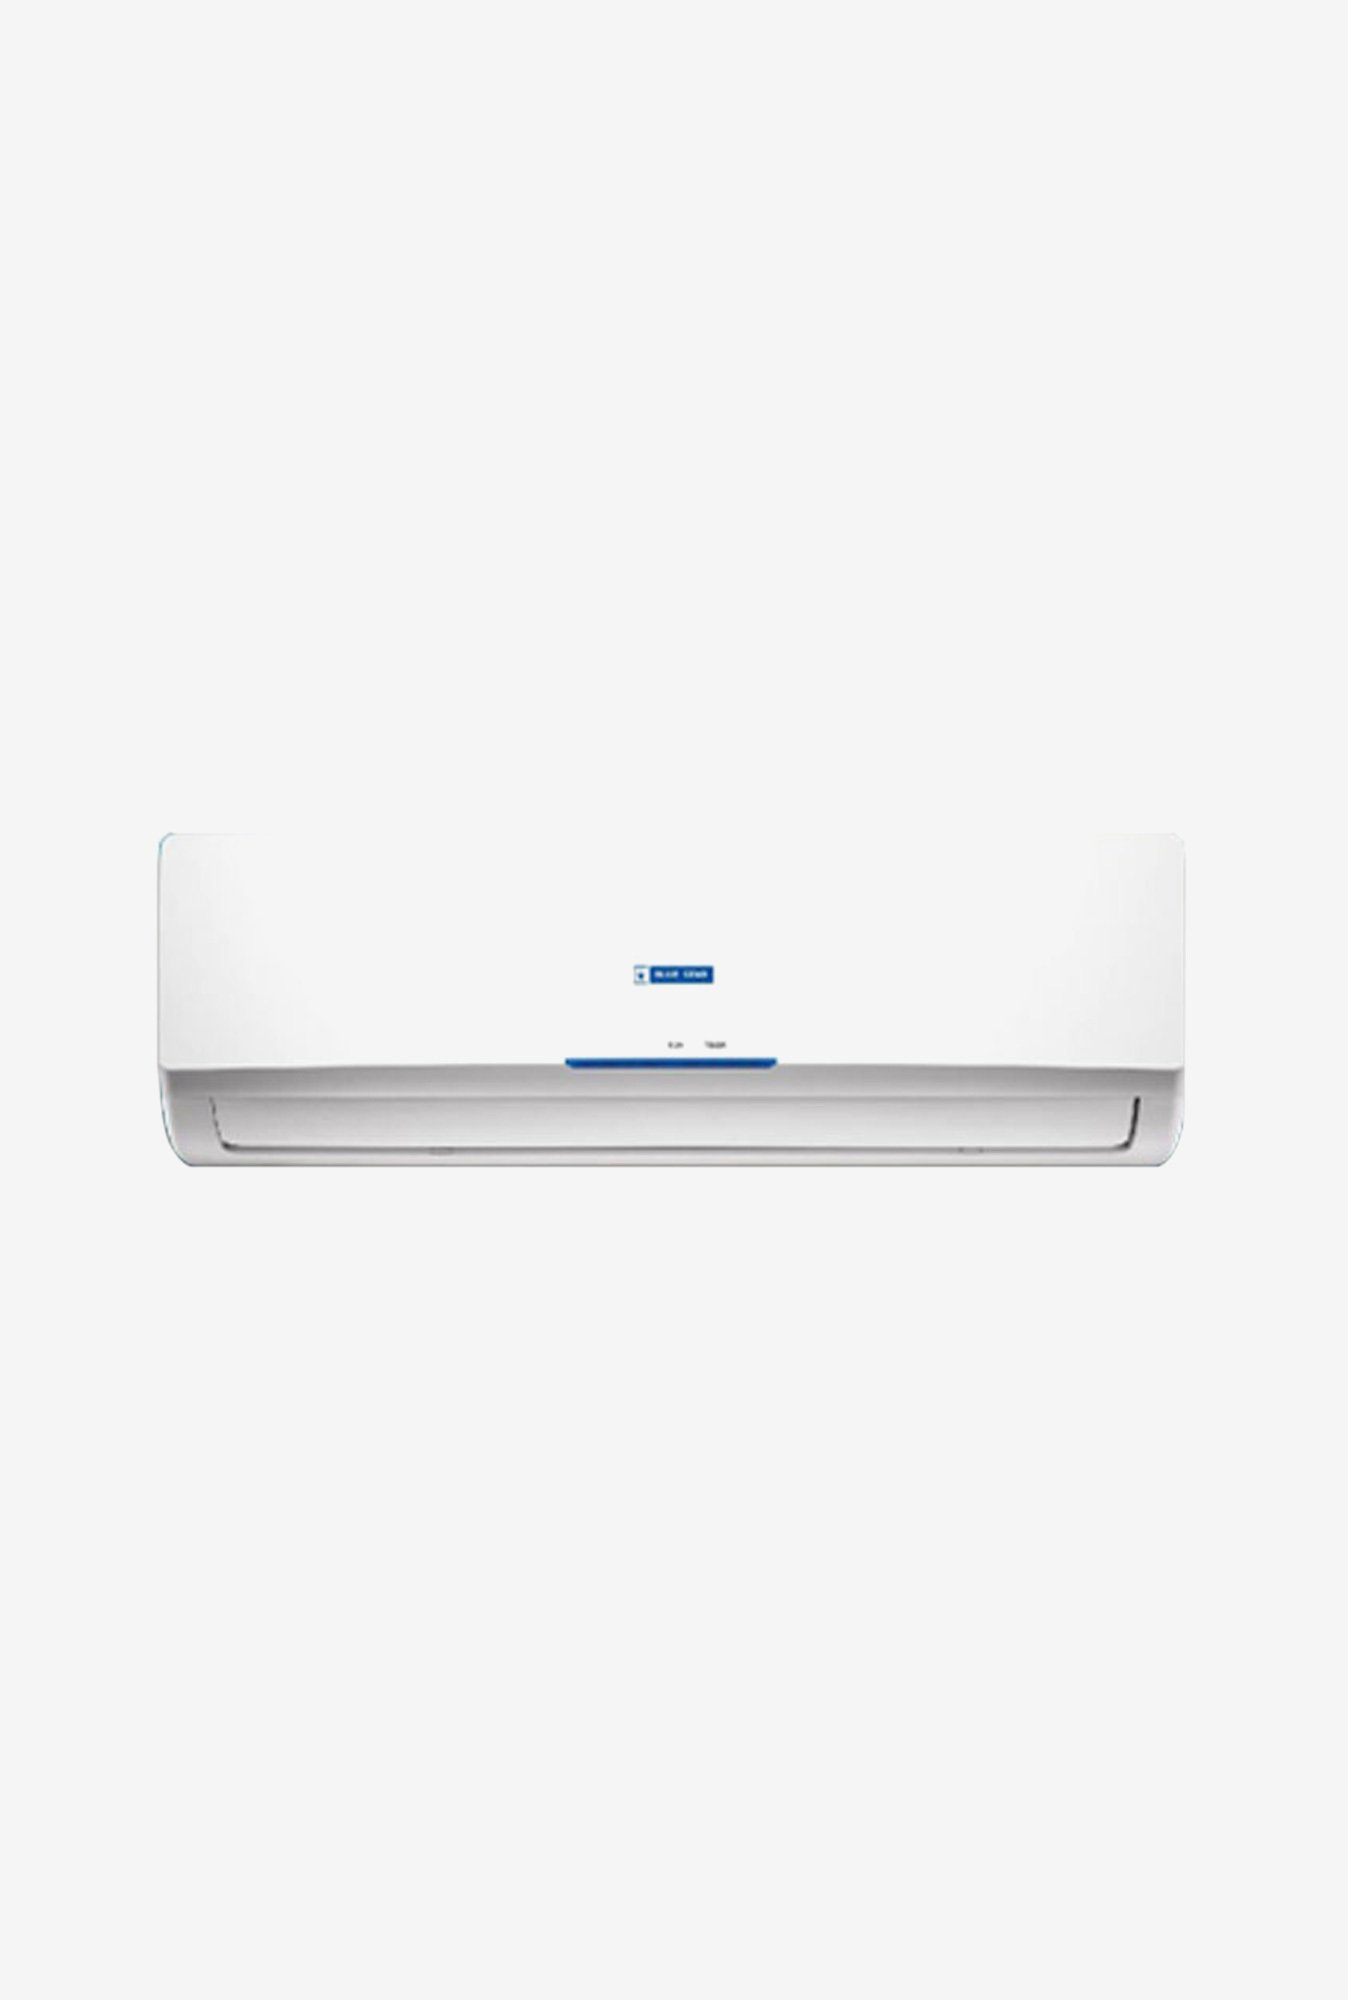 Blue Star 3HW 12FB 1 Ton 3 Star Split AC (White)